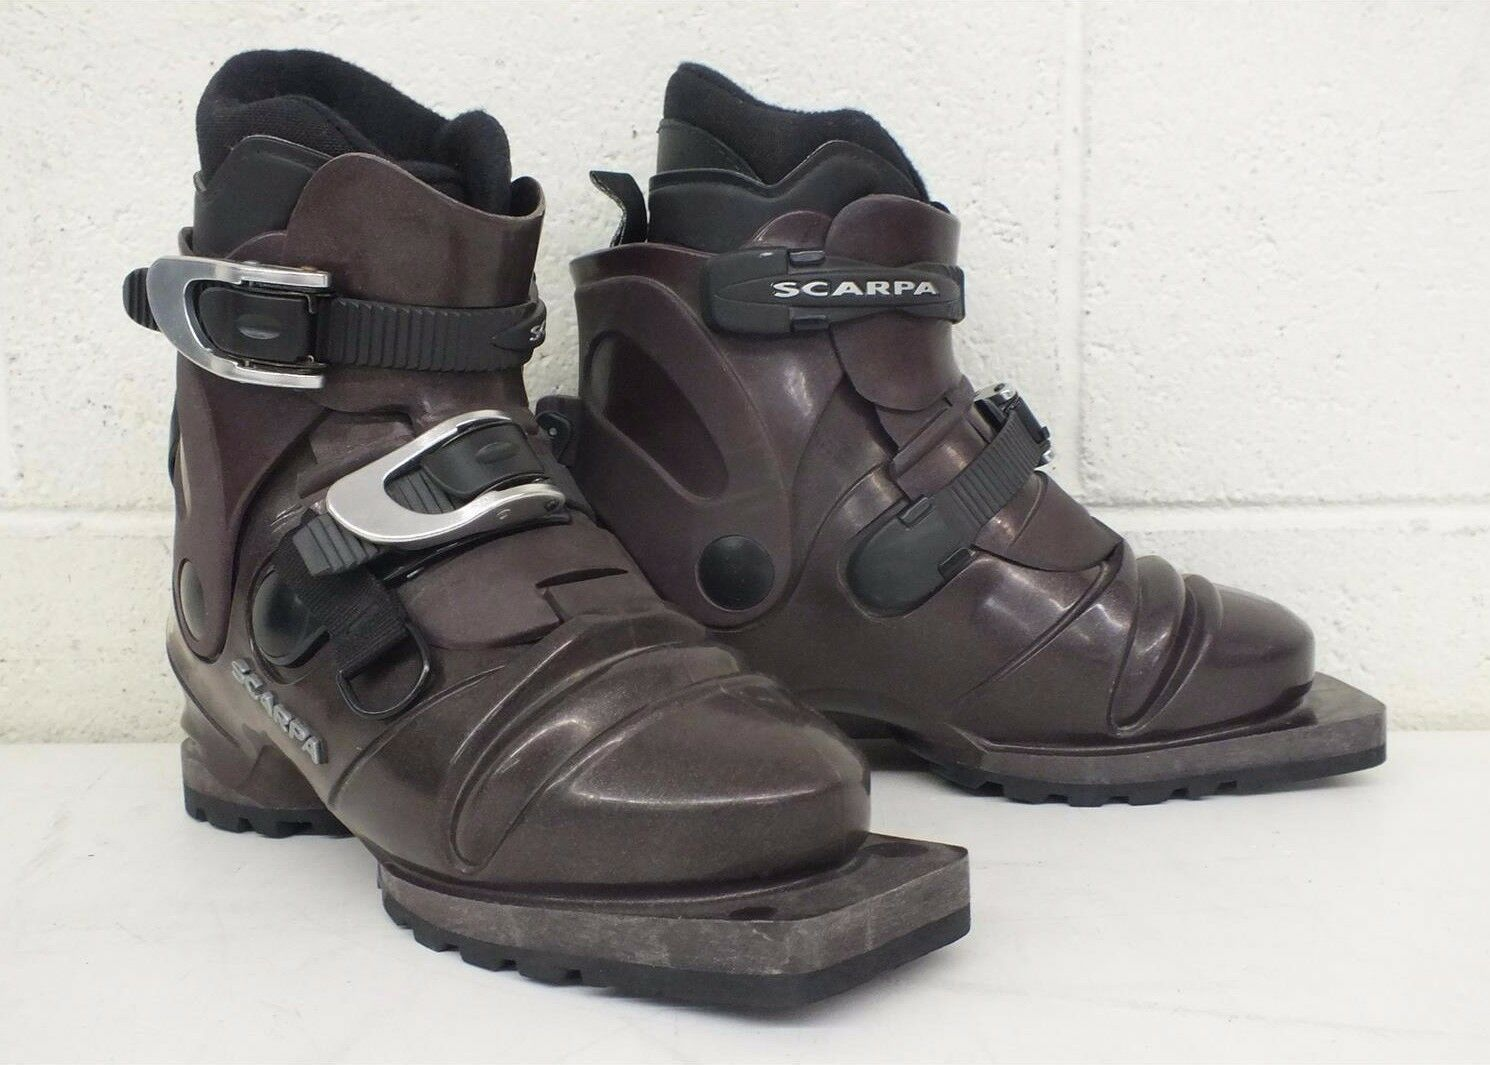 Scarpa T3 3-Pin 75mm Nordic Norm Telemark Ski Boots US Women's 5.5 EXCELLENT